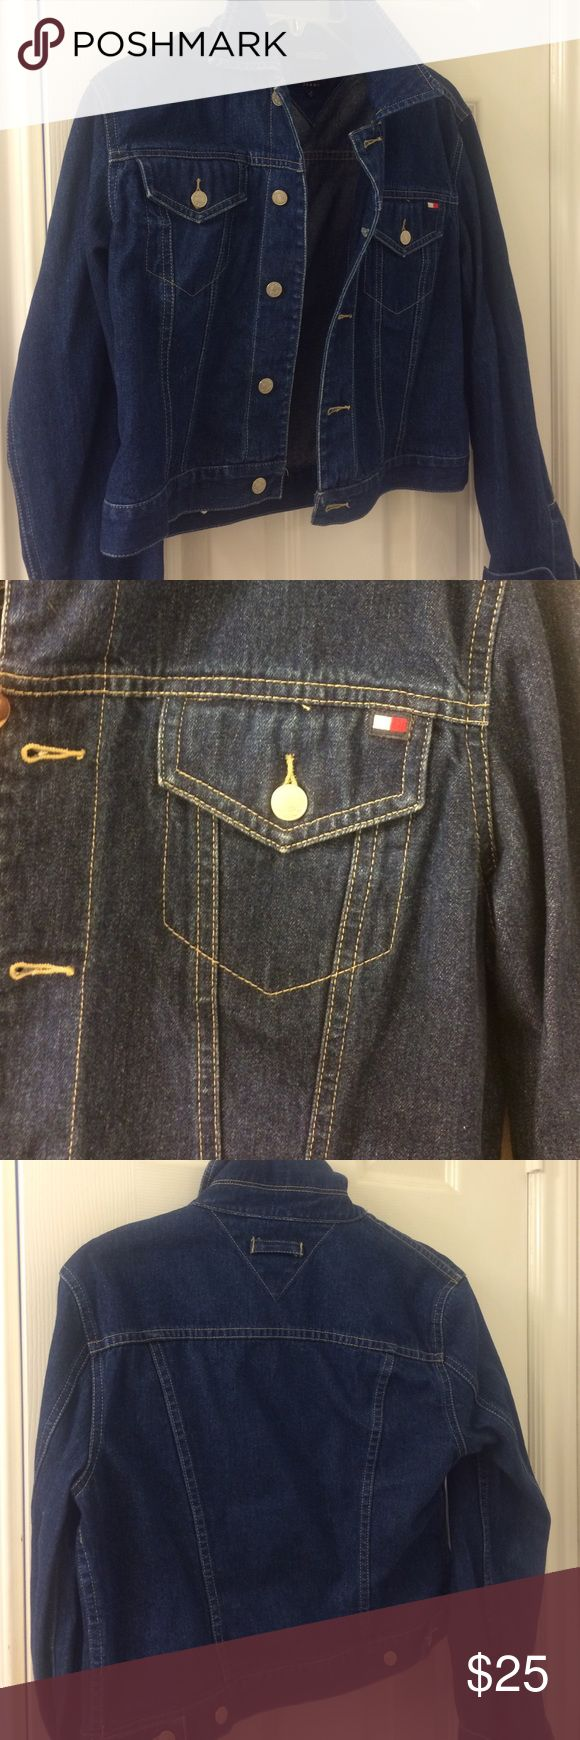 Tommy Hilfiger dark denim jacket Excellent condition dark denim super cute Tommy Hilfiger jacket. This states a large but I believe it fits like a medium, so I am listing as a size medium. Non smoking home! Tommy Hilfiger Jackets & Coats Jean Jackets